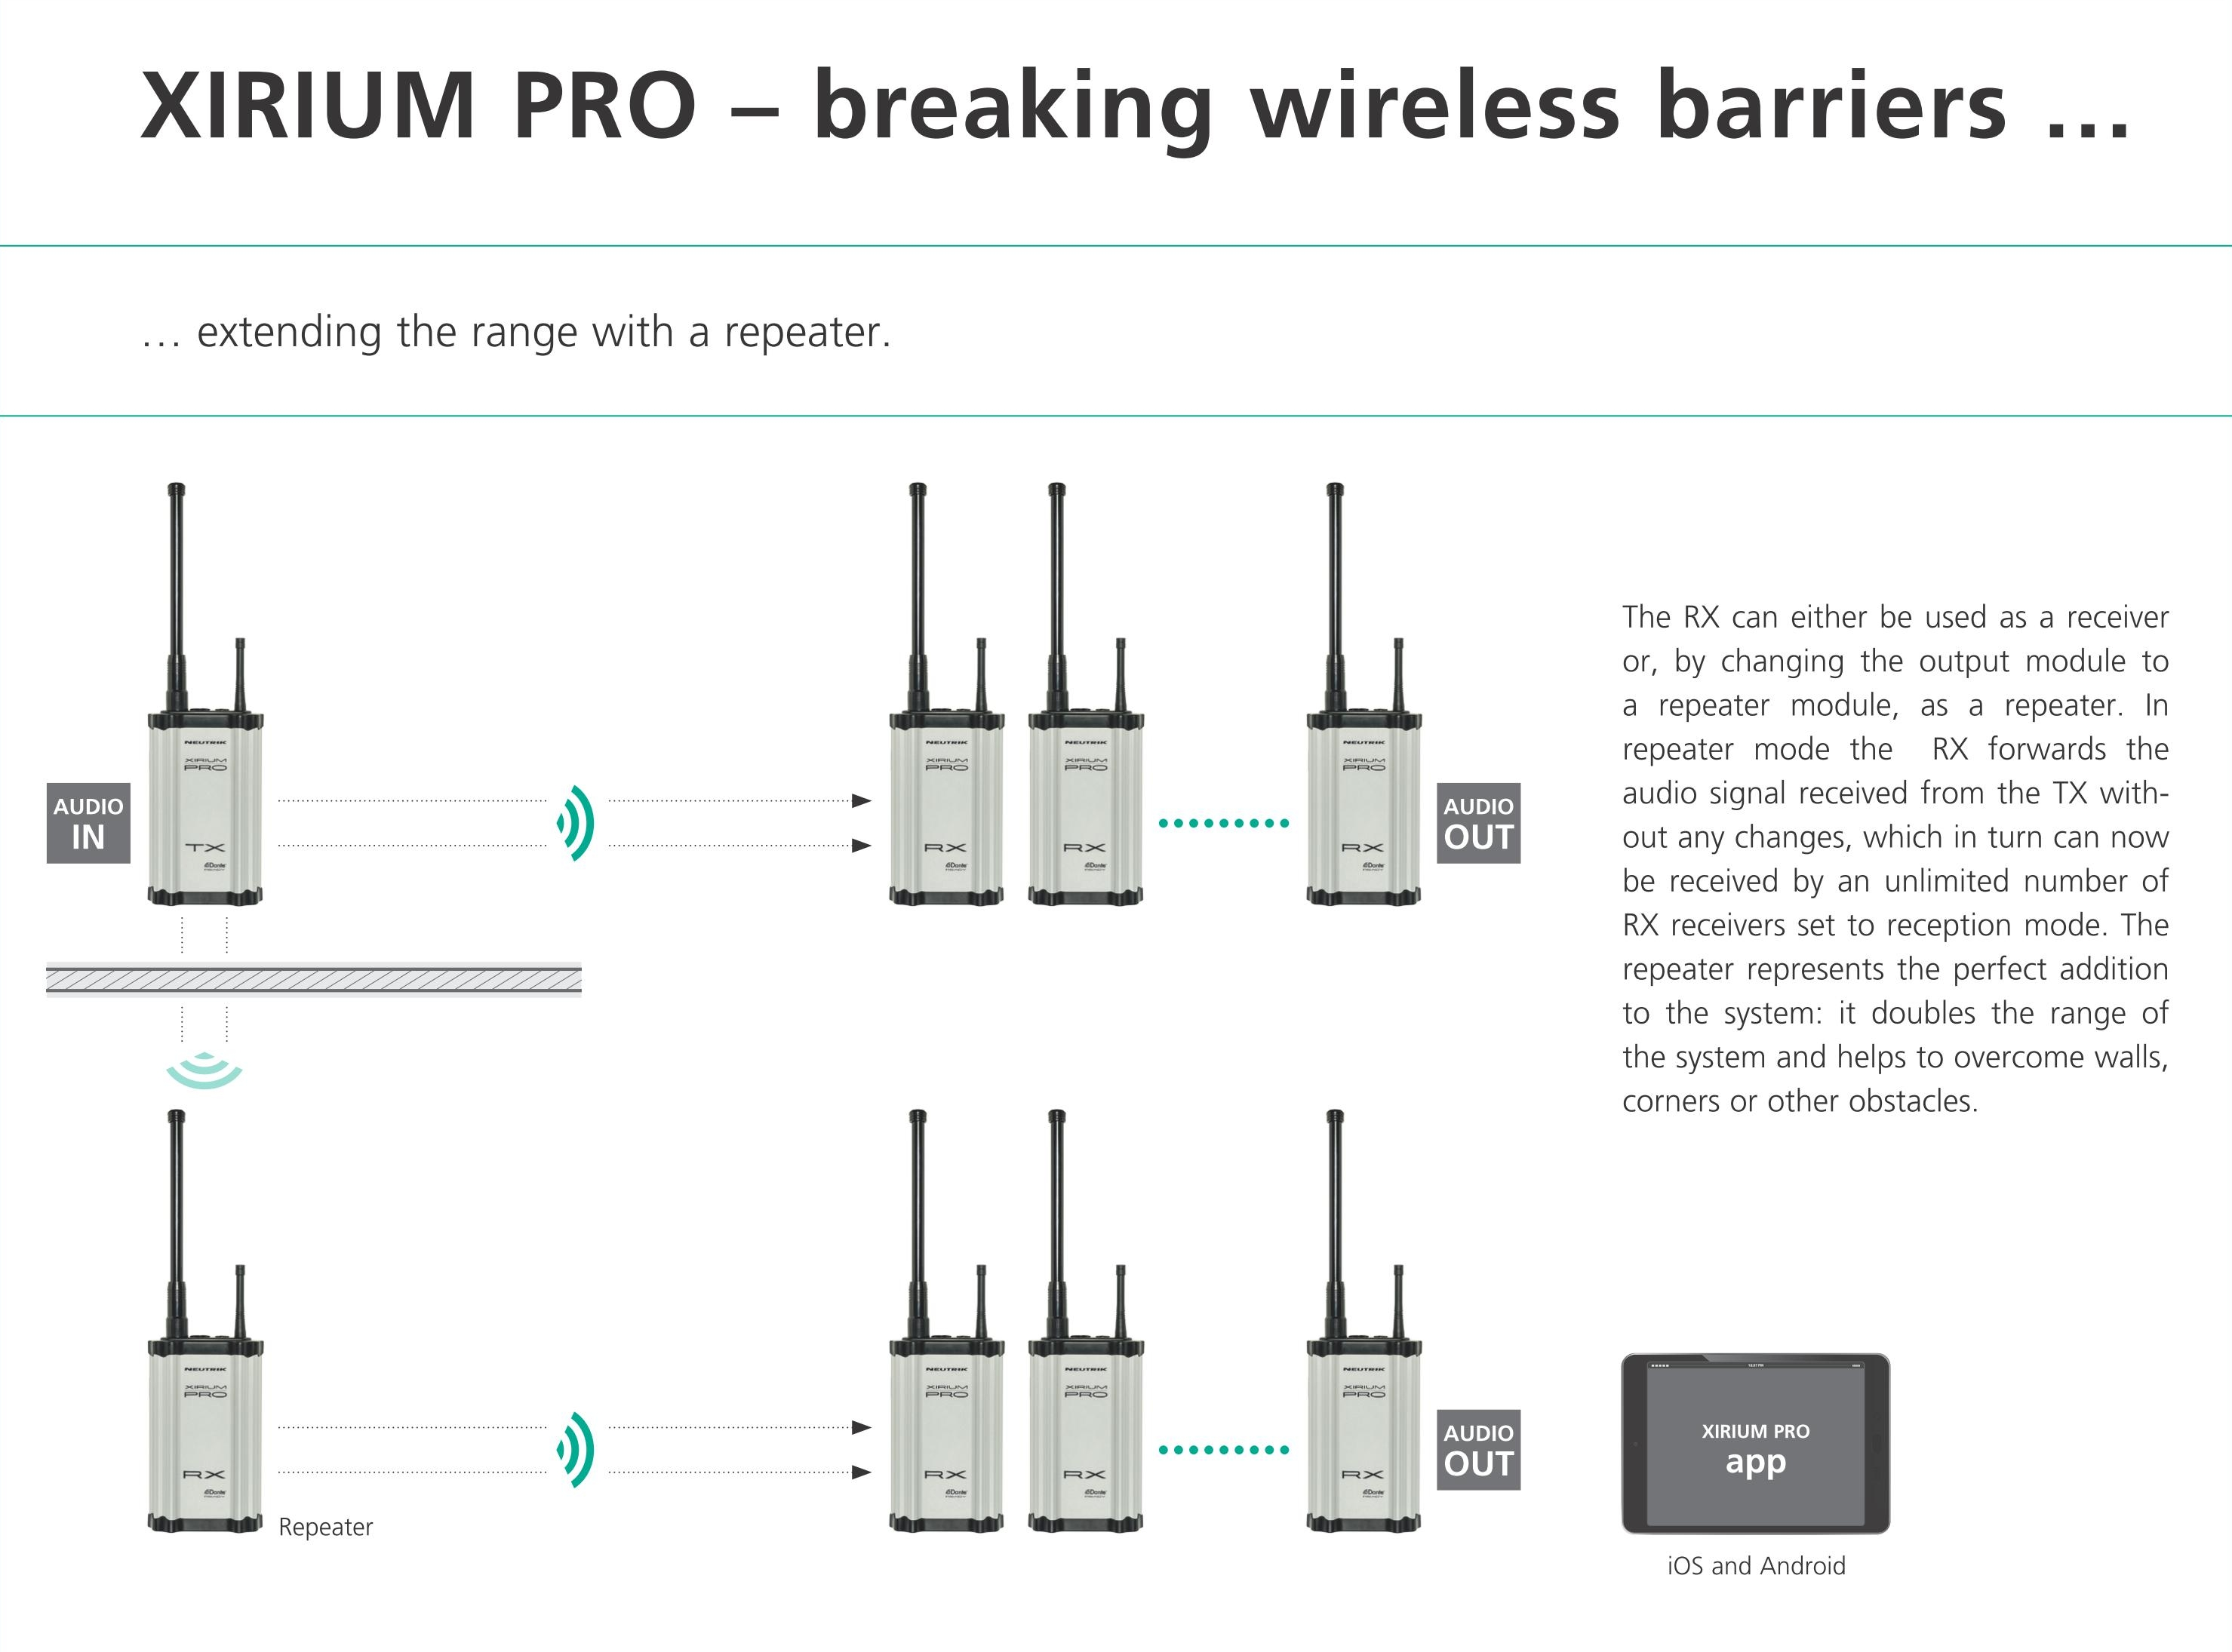 XIRIUM PRO Breaking Wireless Barriers